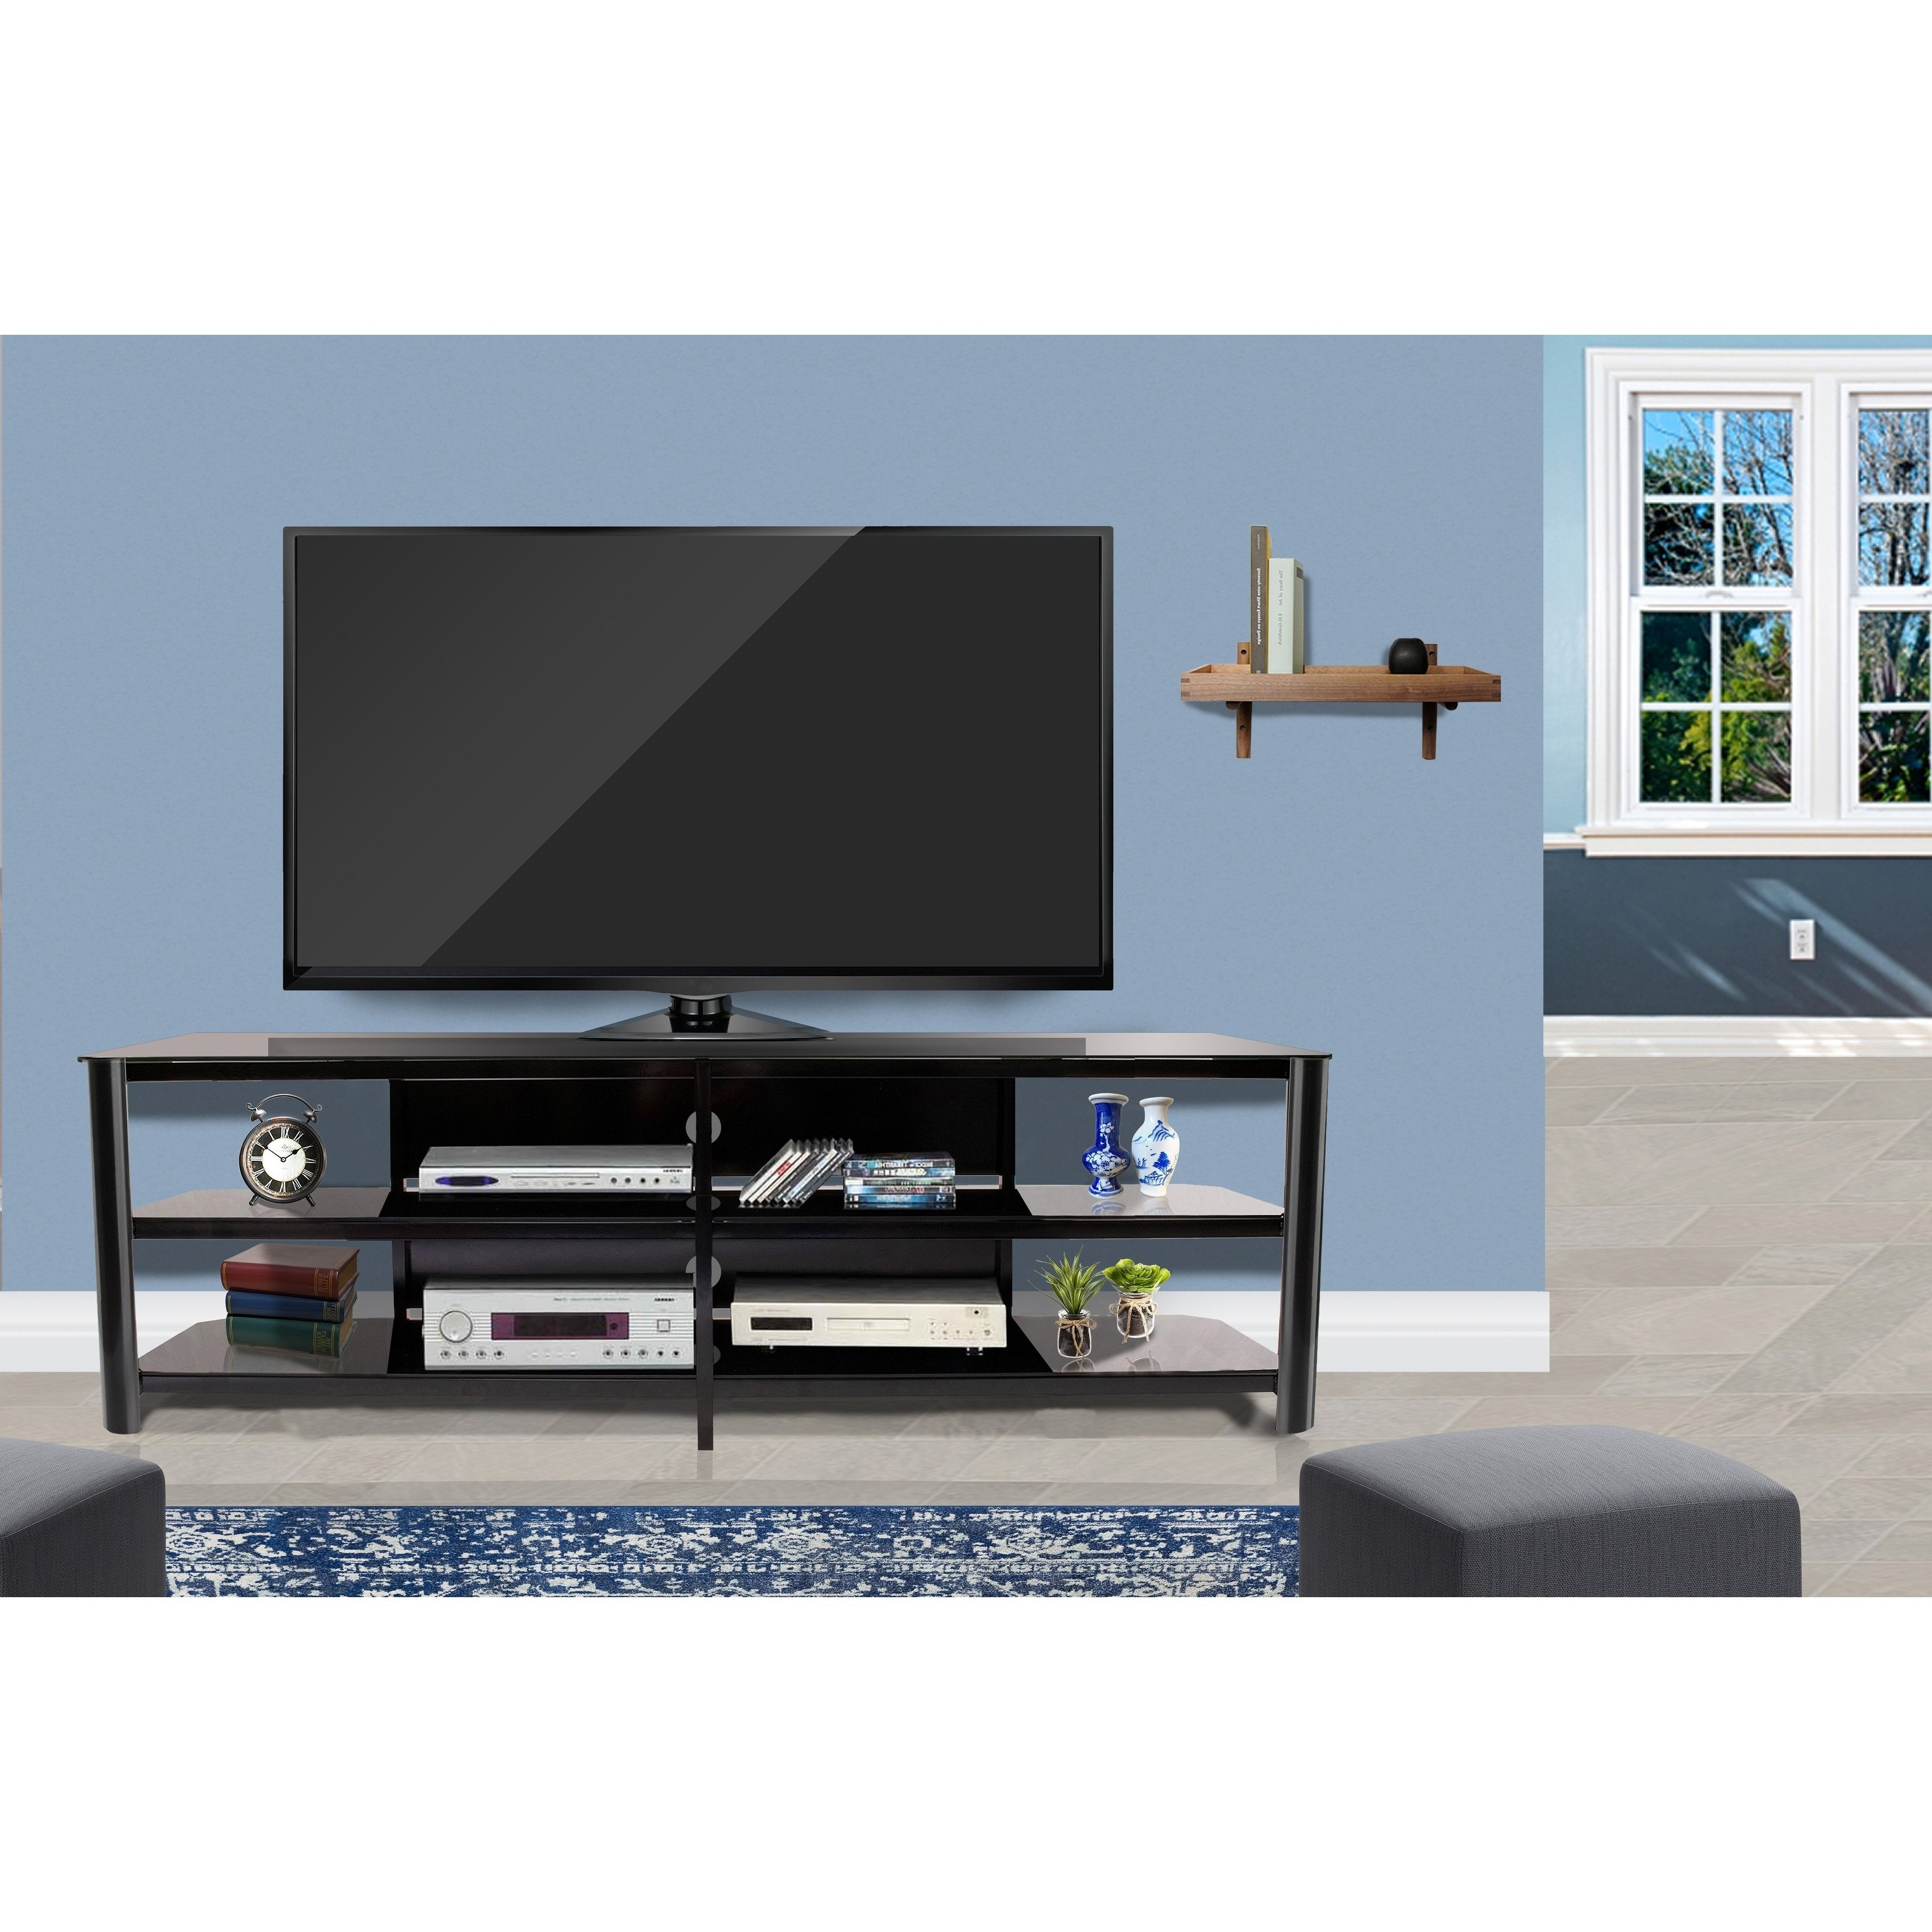 Shop Fold 'n' Snap Oxford Ez Black Innovex Tv Stand – Free Shipping Regarding Oxford 84 Inch Tv Stands (View 14 of 20)